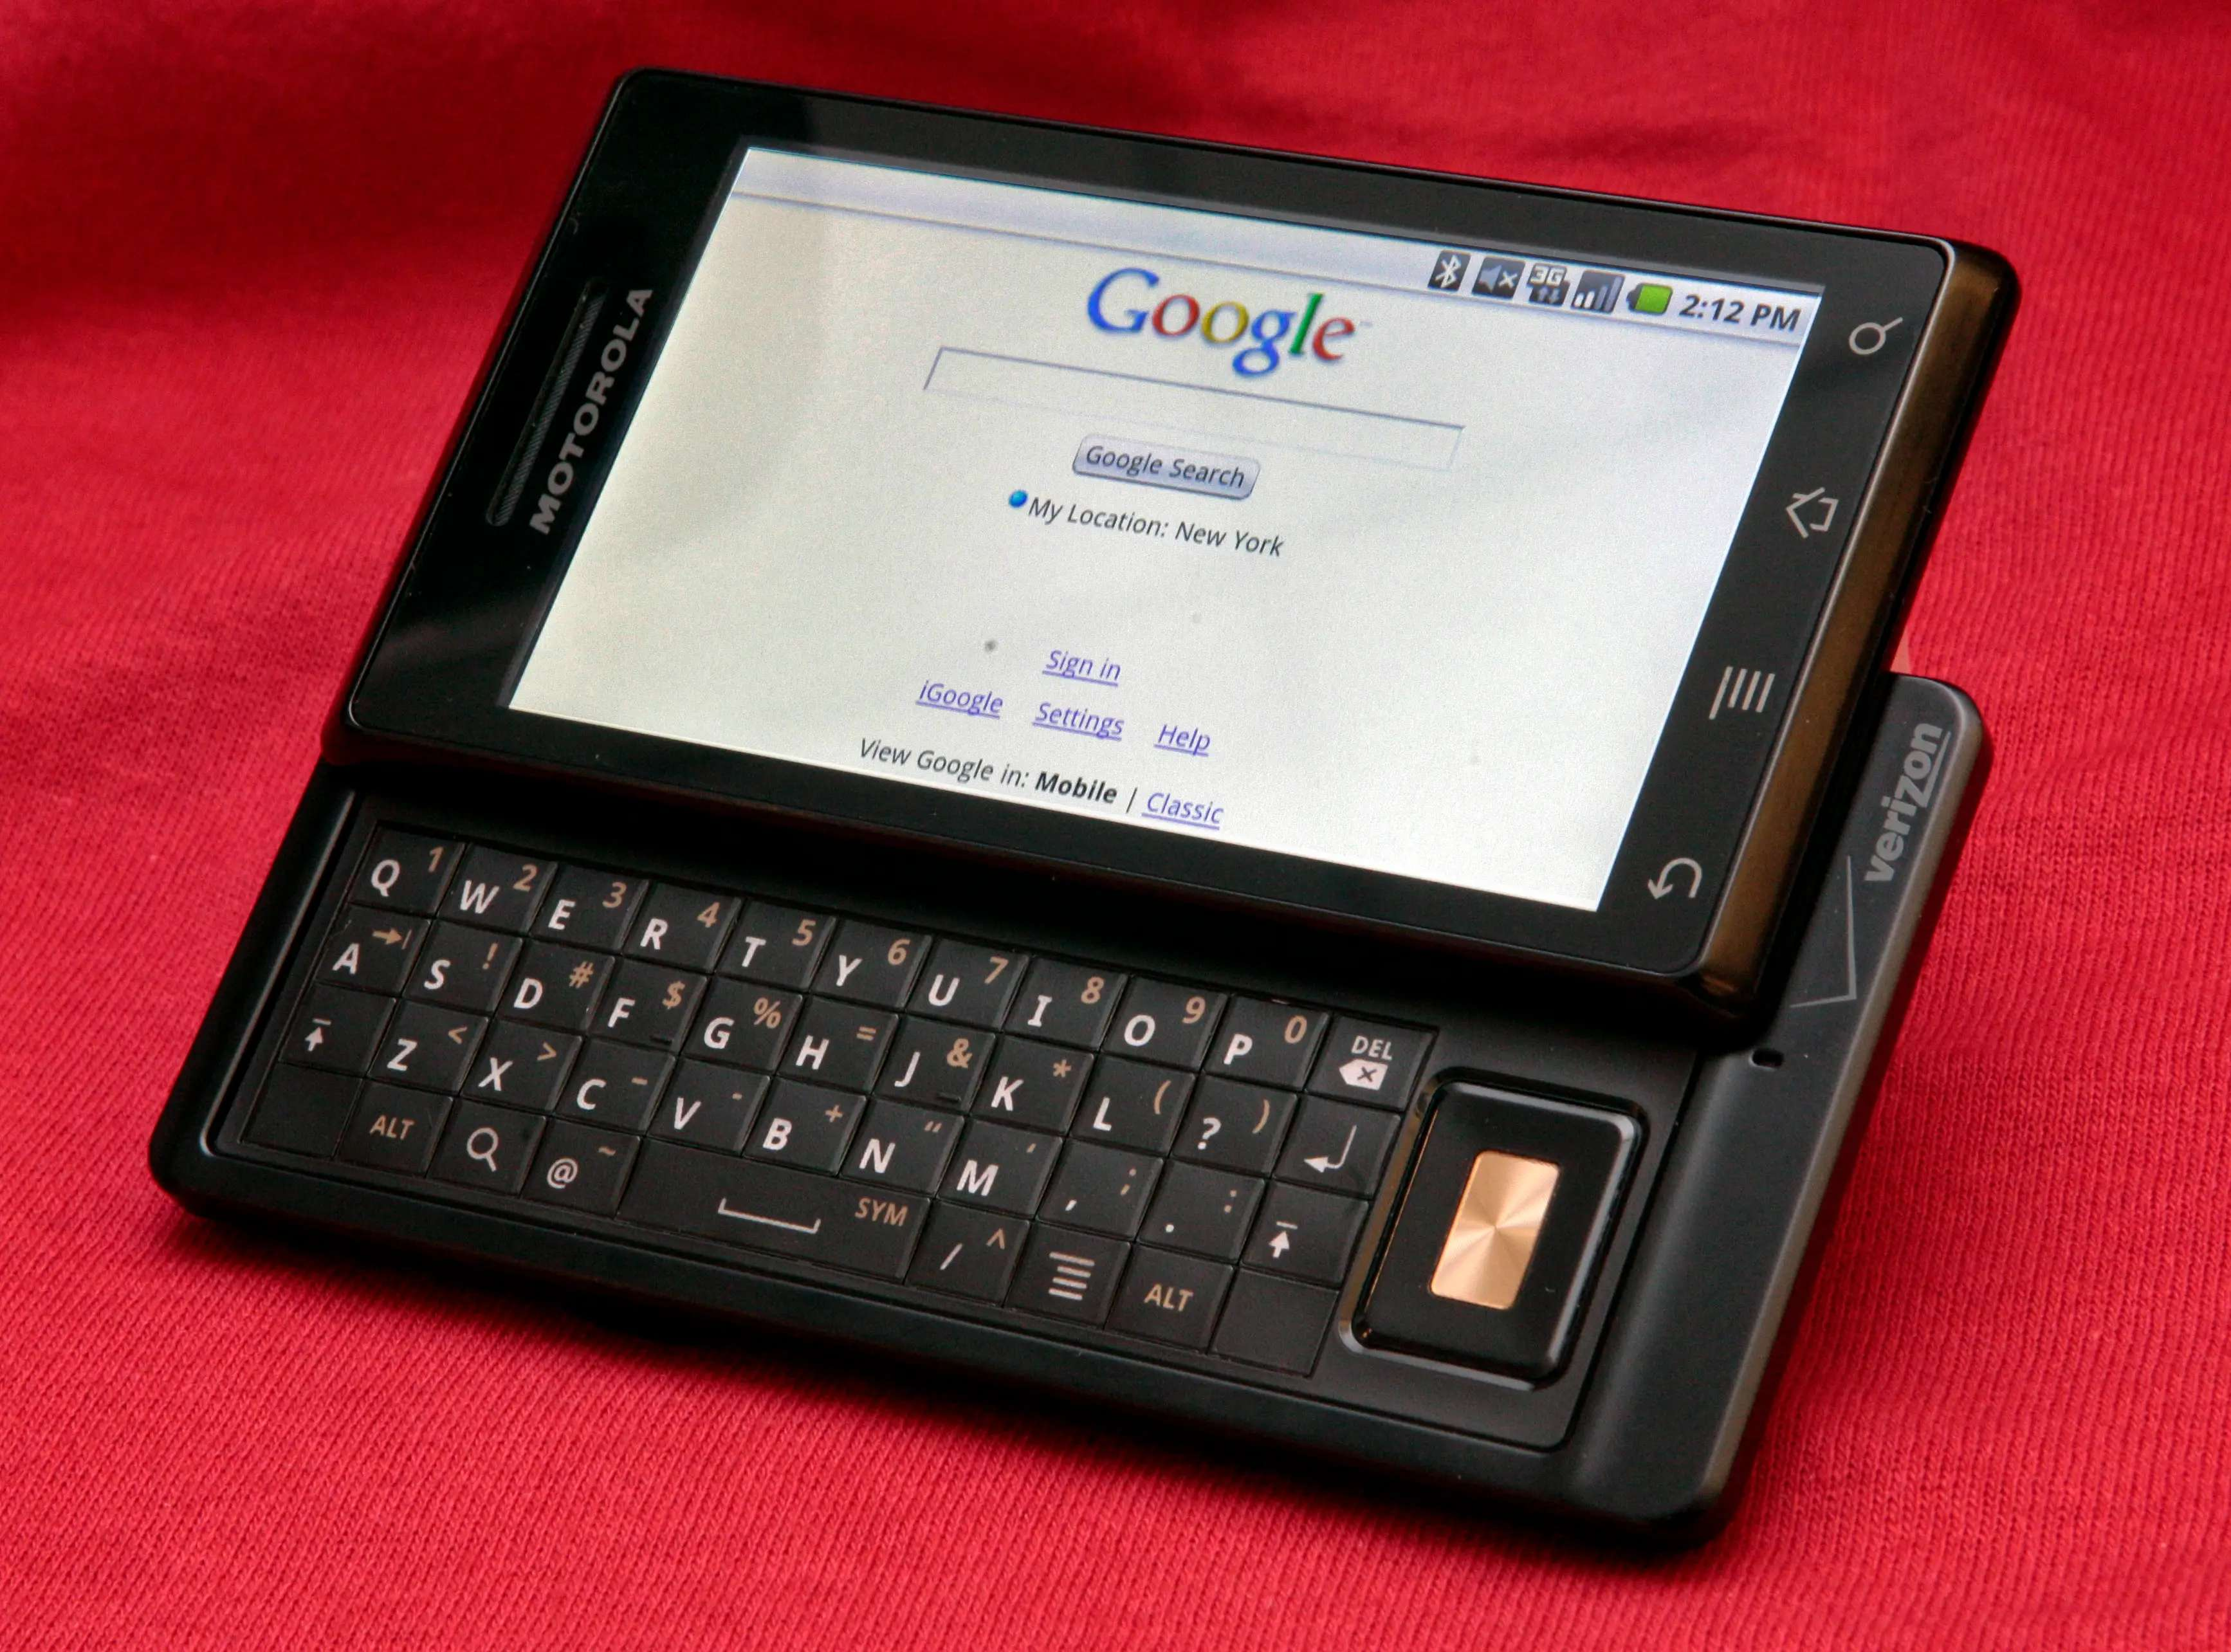 The Motorola Droid started the marketing trend of Android manufacturers differentiating themselves from the iPhone. Motorola touted the Droid's physical keyboard and removable battery as two major advantages over the iPhone.